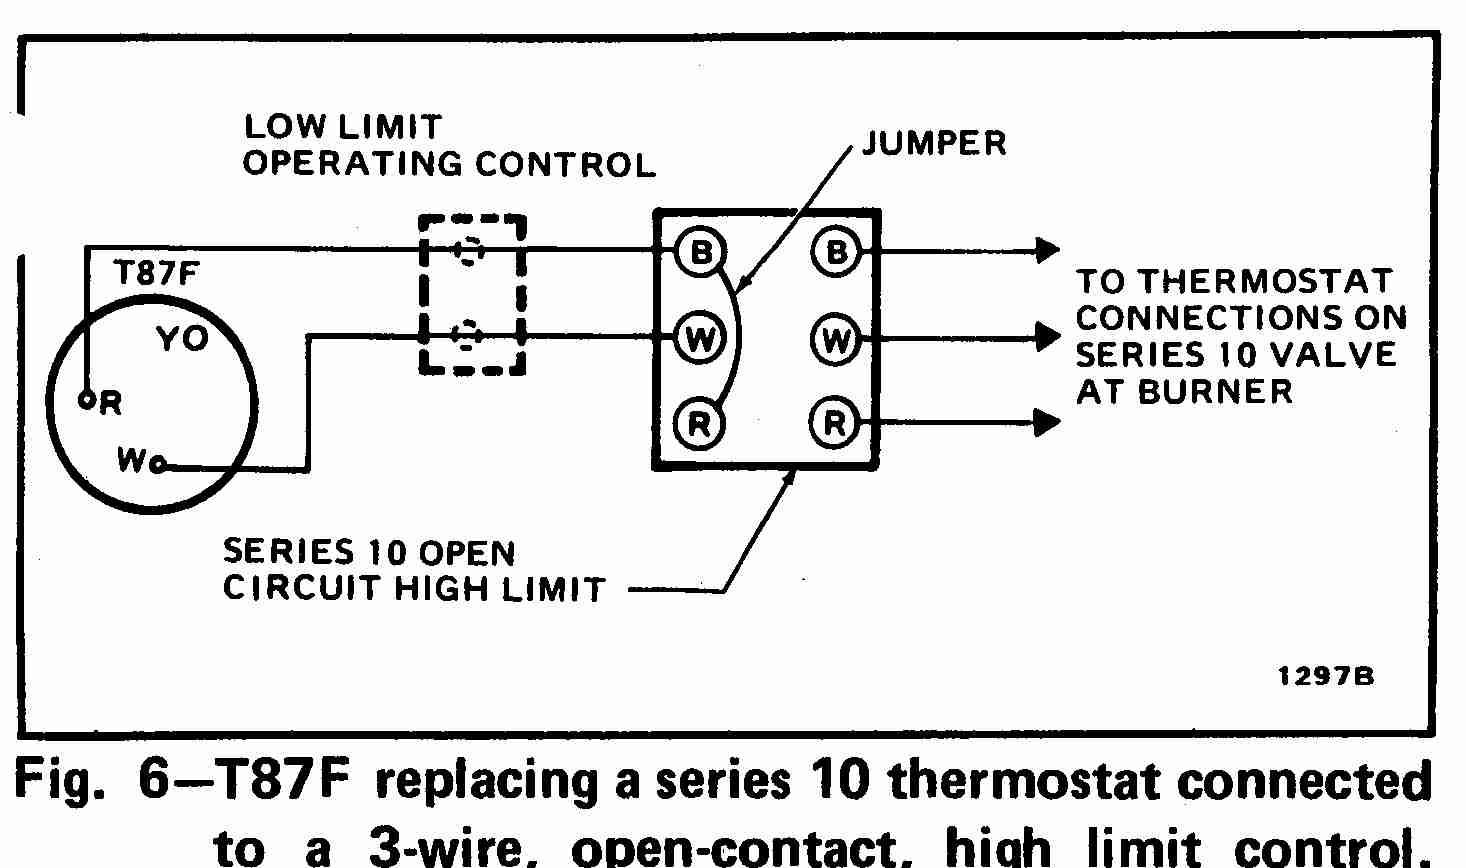 thermostat wiring diagram on commercial heat cool thermostat wiringroom thermostat wiring diagrams for hvac systems rh inspectapedia com